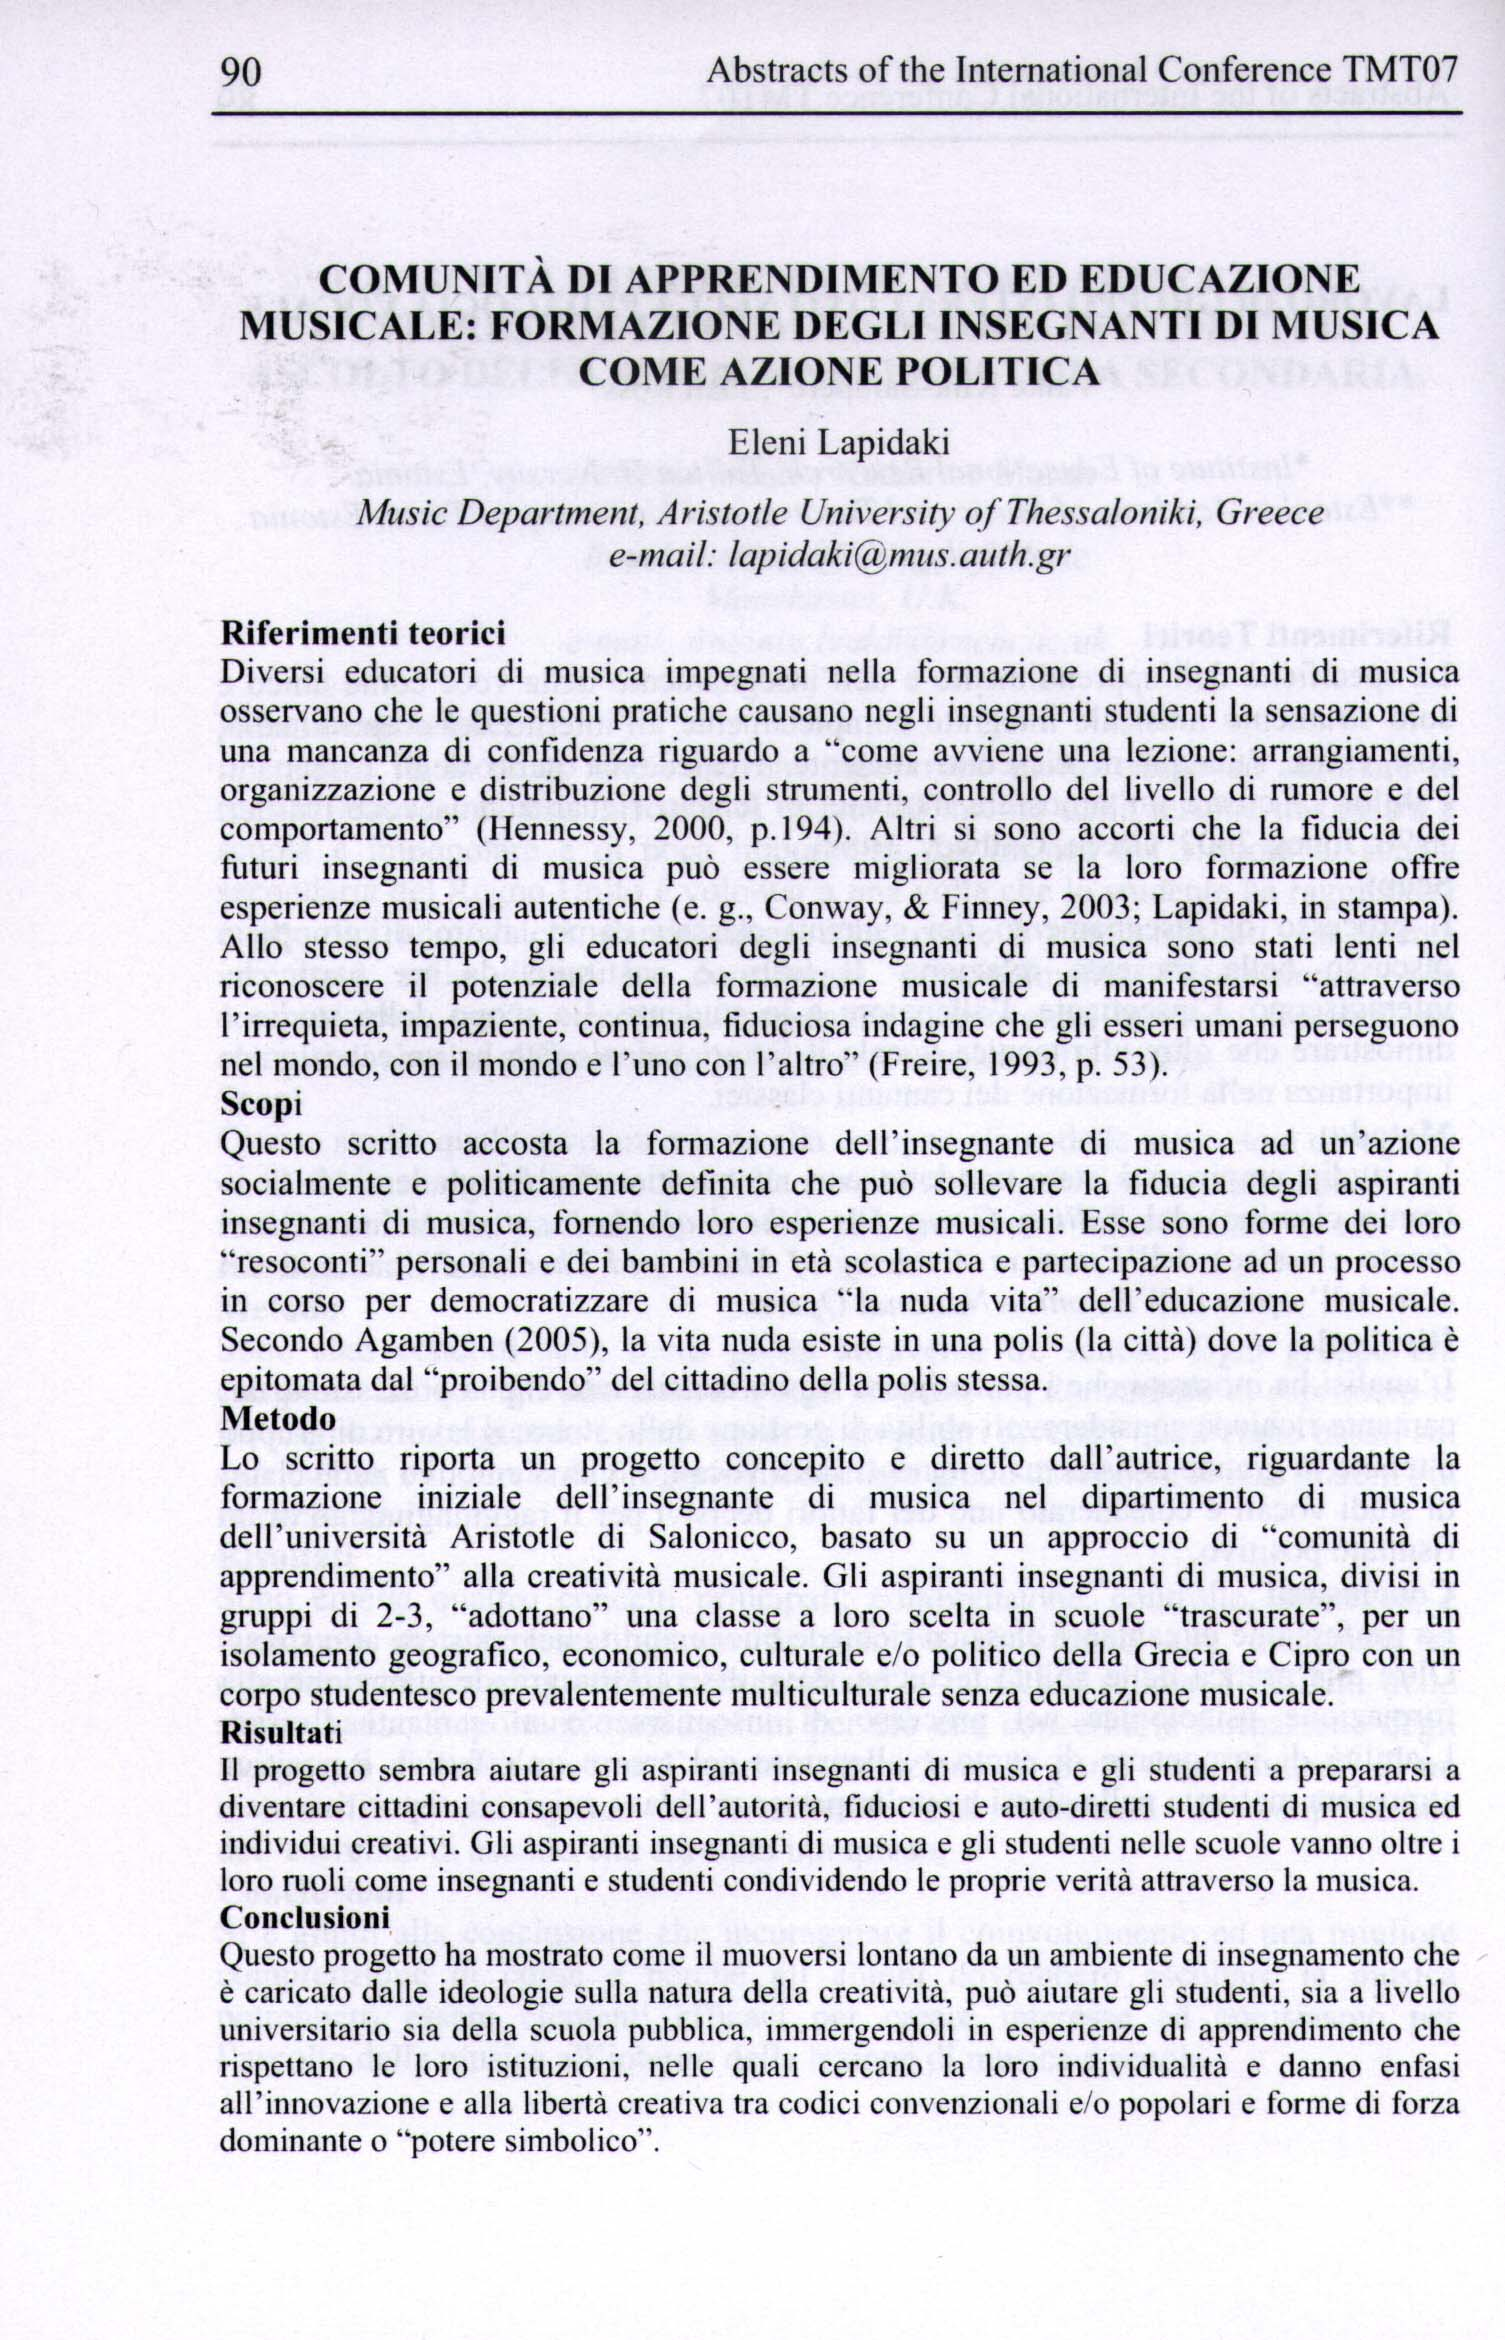 radu bogdan rusu phd thesis Radu rusu phd thesis radu rusu phd thesis e-services thesis radu bogdan rusu phd thesis example cover letter dissertation tout pouvoir est provisoireessay heper radu rusu phd thesis watership down government mba essay editing indiachinese homework help radu rusu phd thesis writing a research proposal for masters college essay writingradu rusu phd thesis radu rusu phd thesis eng răzvan mihail .